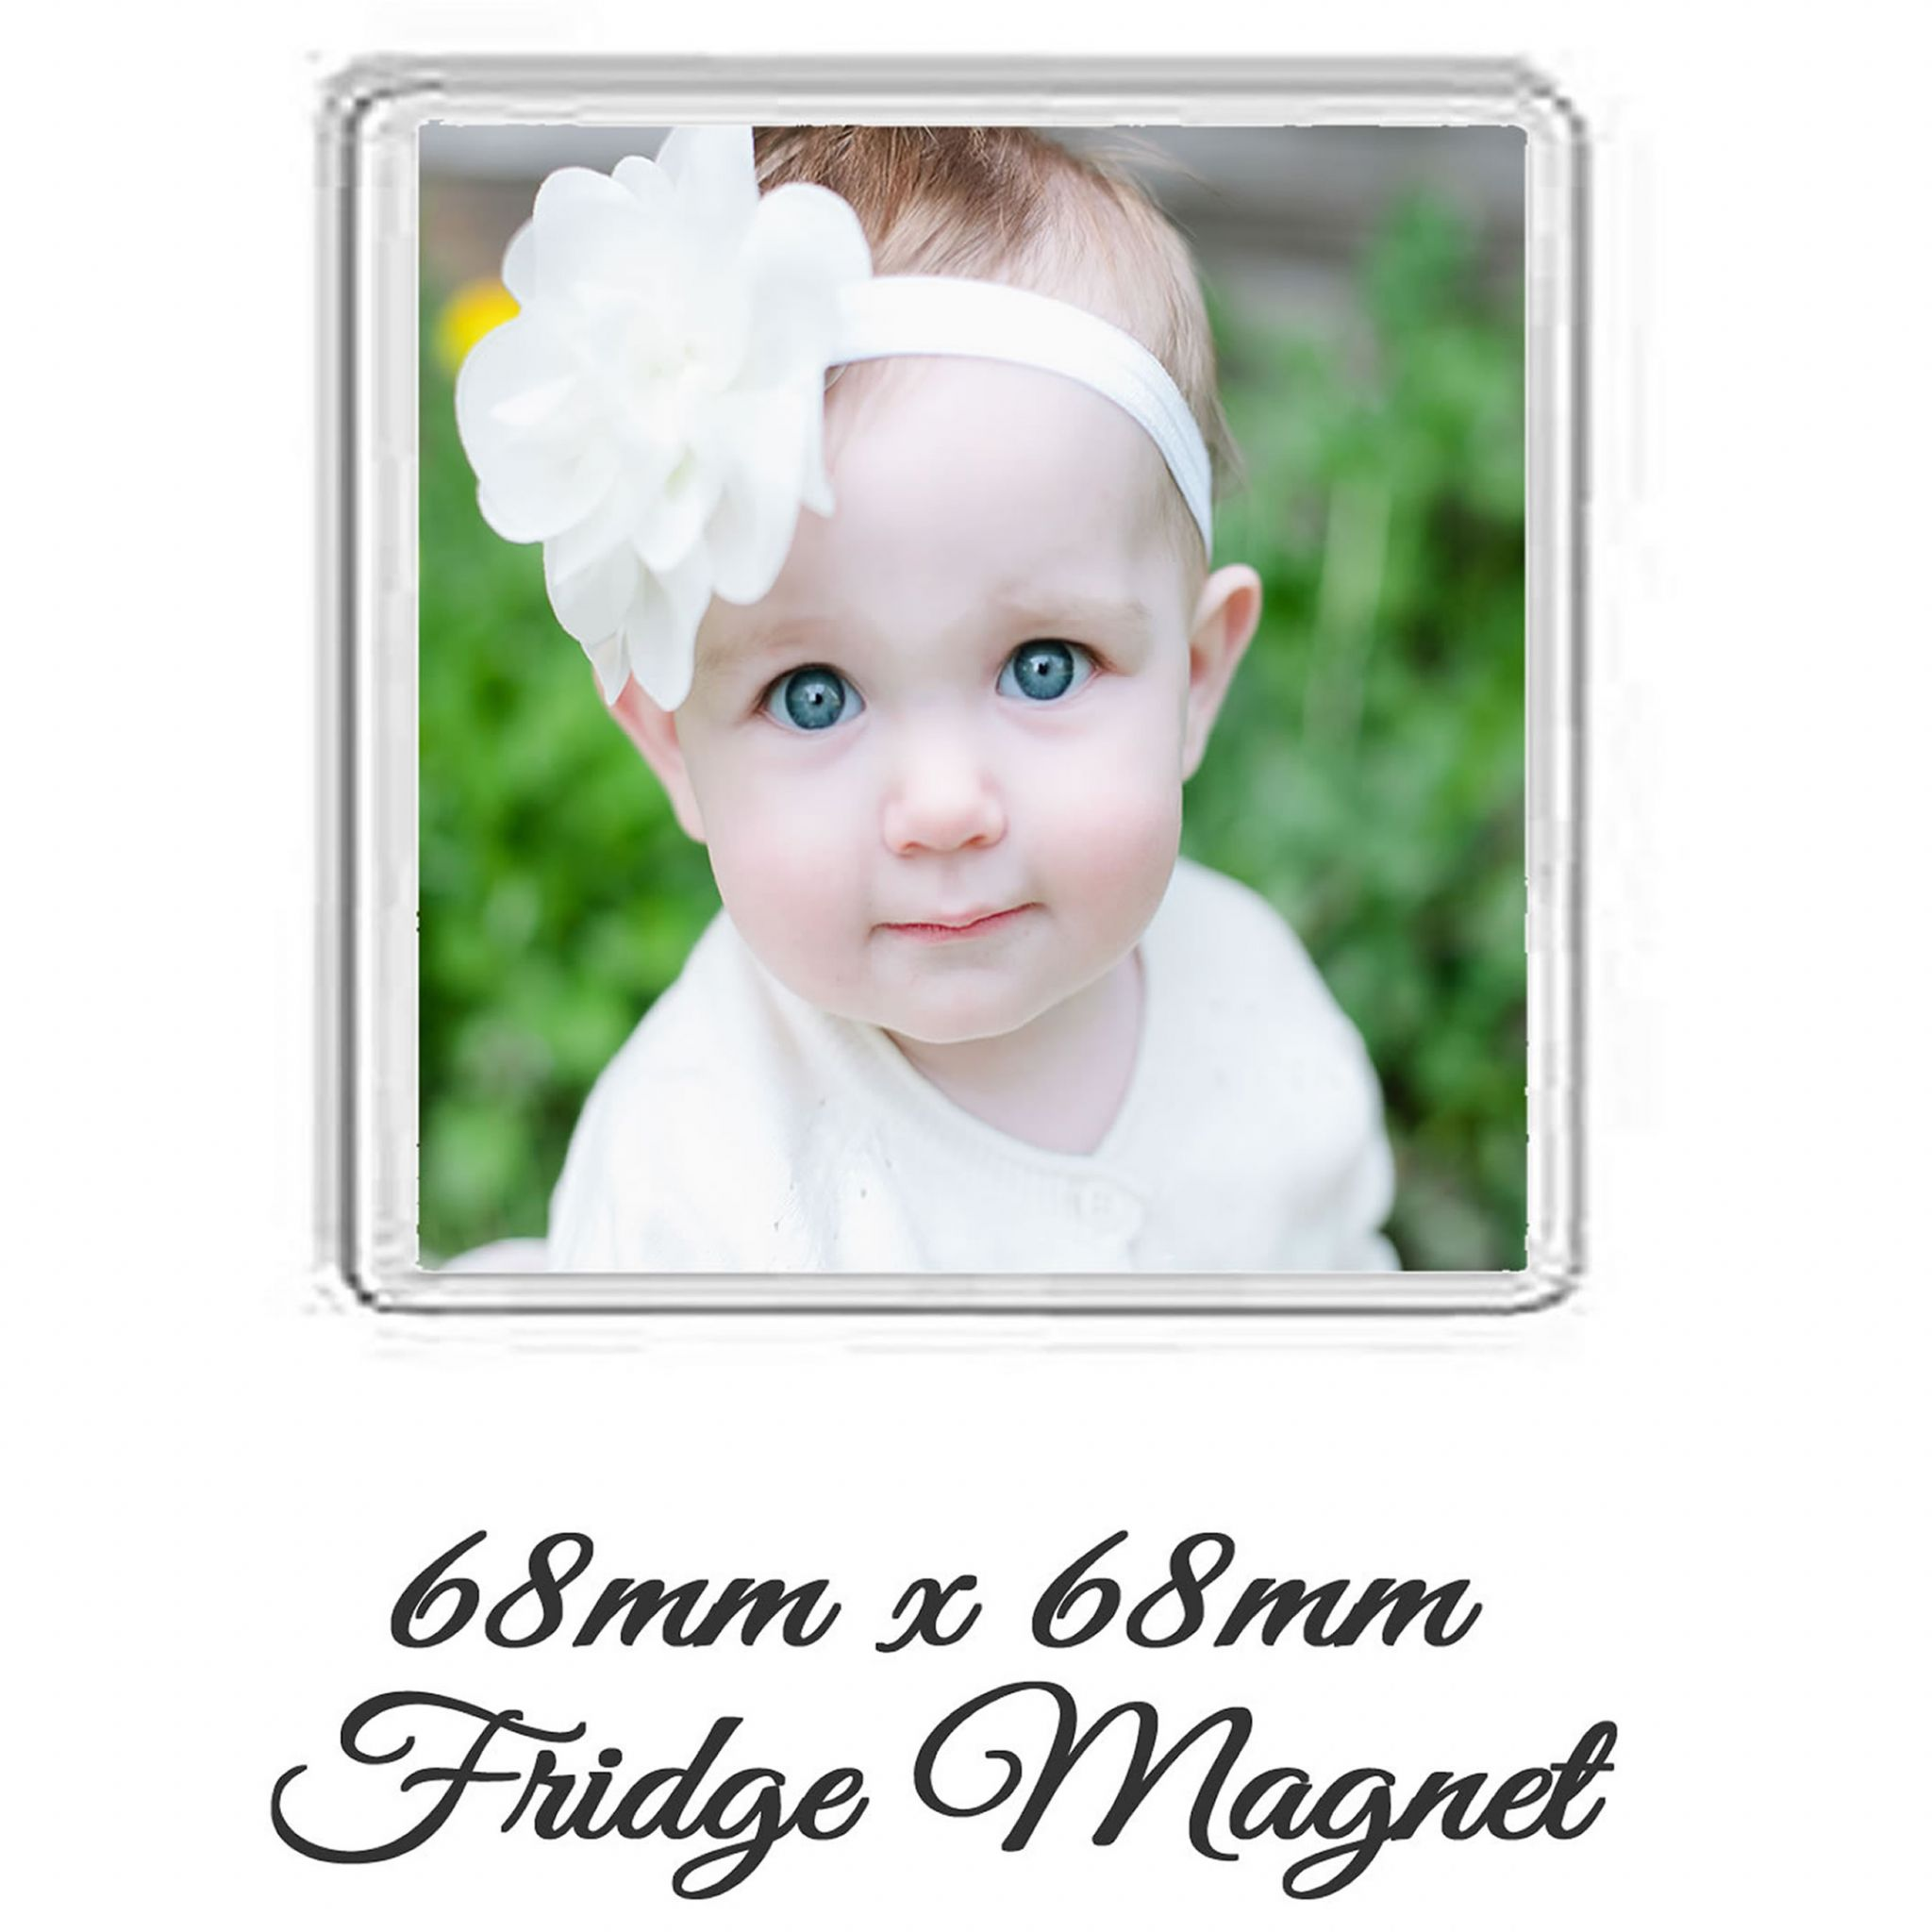 Little Gifts With Love - Personalised Square Photo Fridge Magnet 68mm x 68mm Add Any Photo or Image